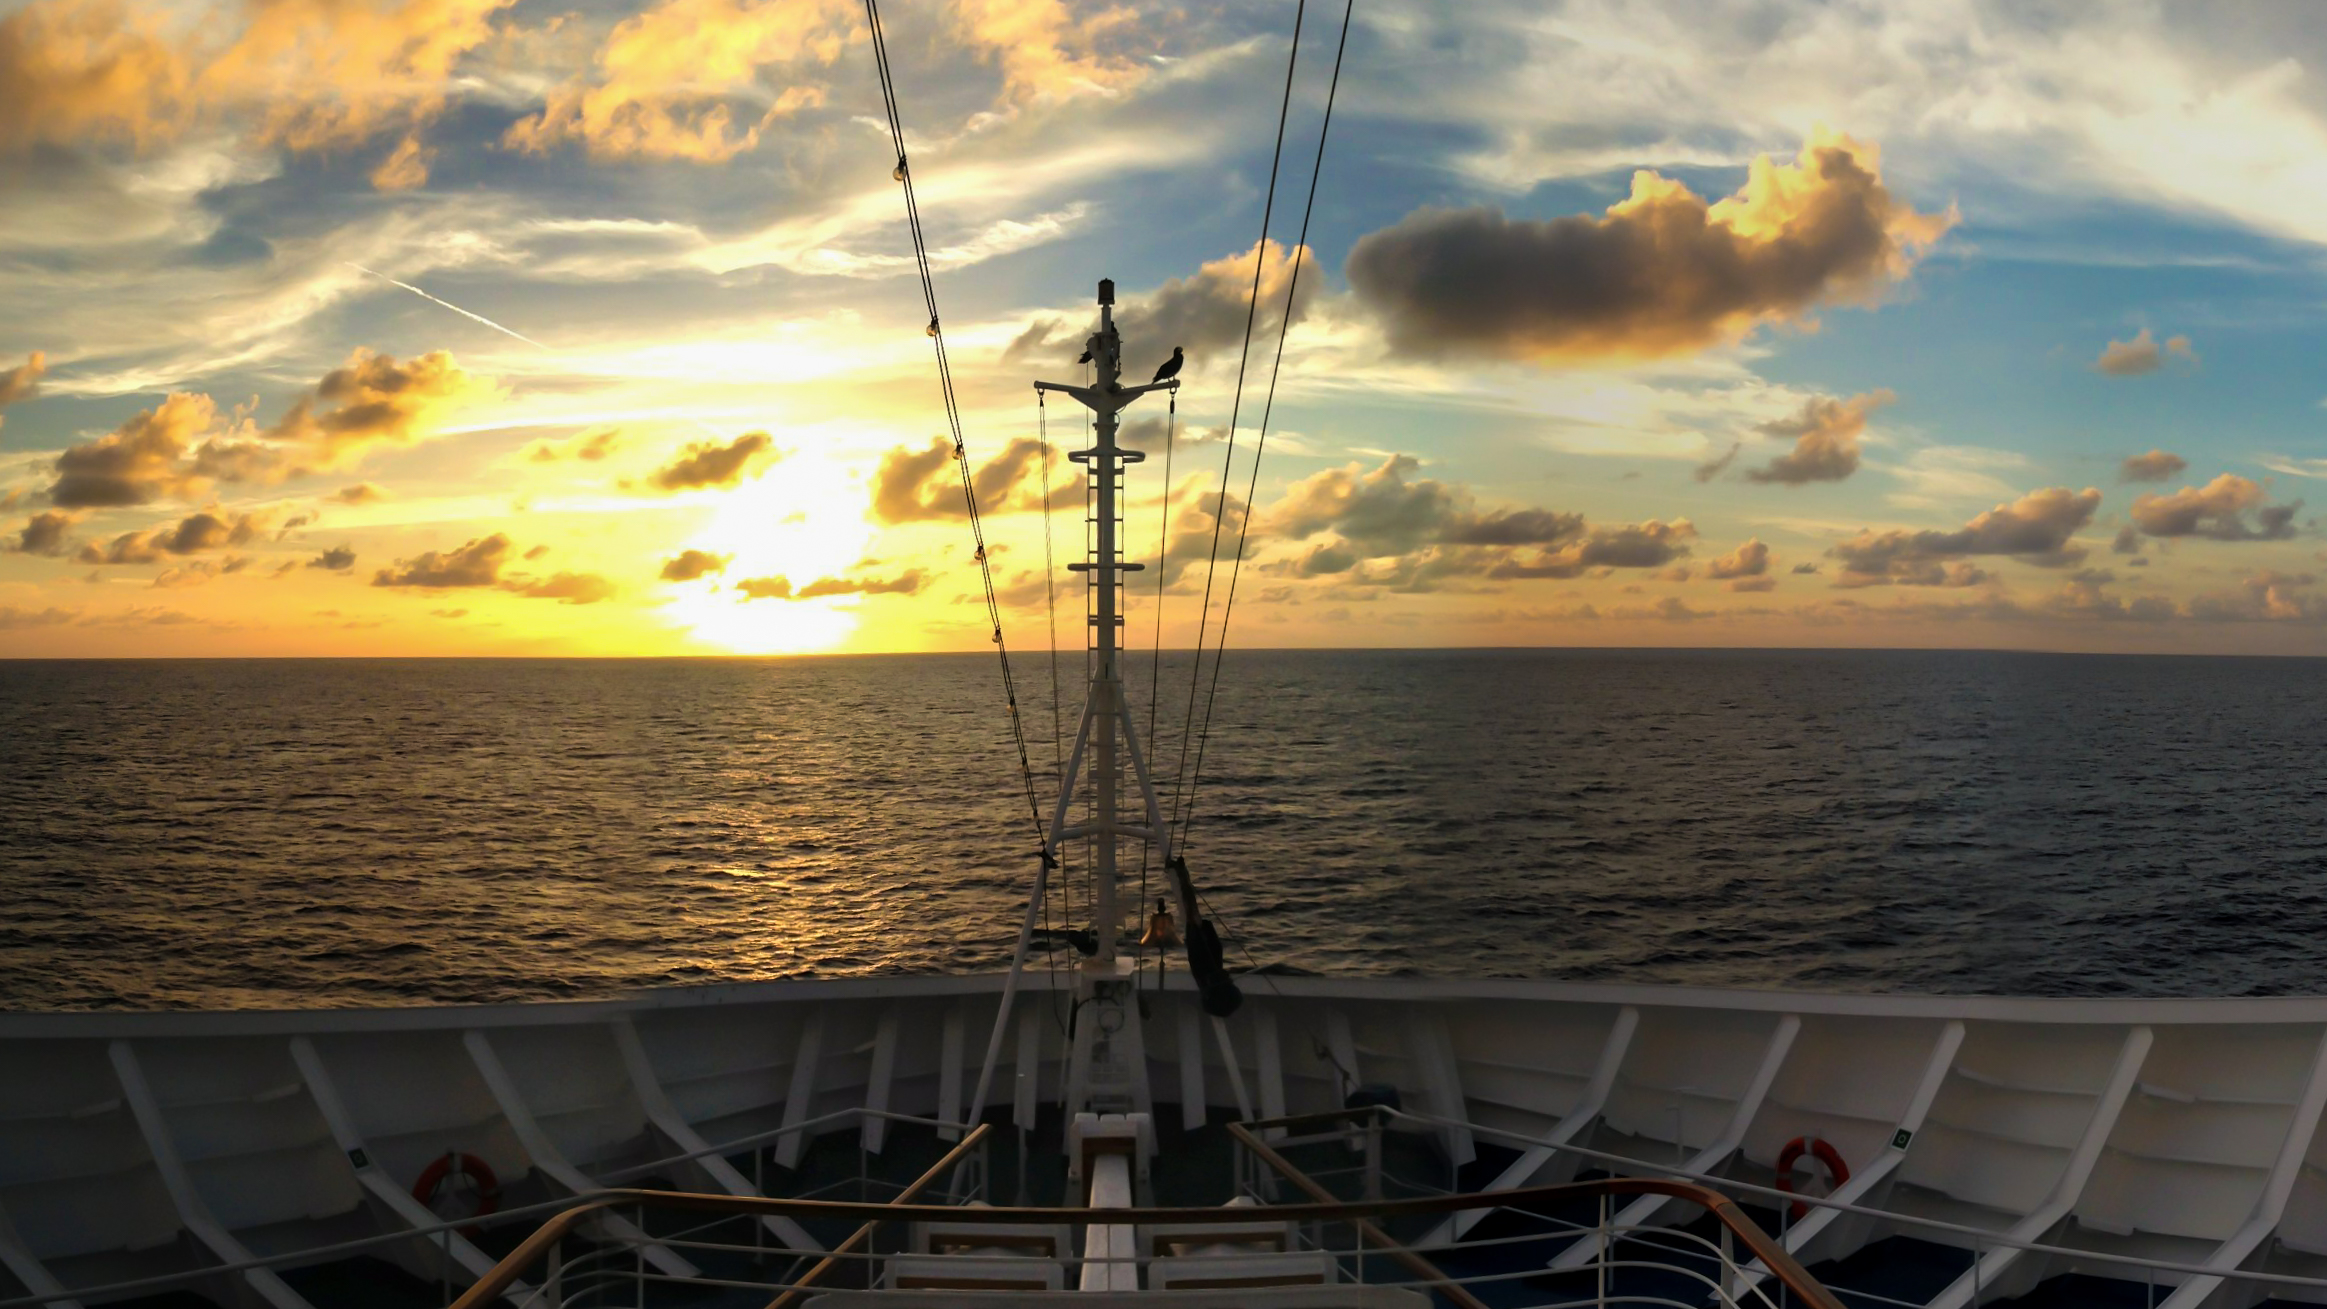 Click Photo to Enlarge | Carnival Breeze Caribbean Sunset | © Carl Nethercutt